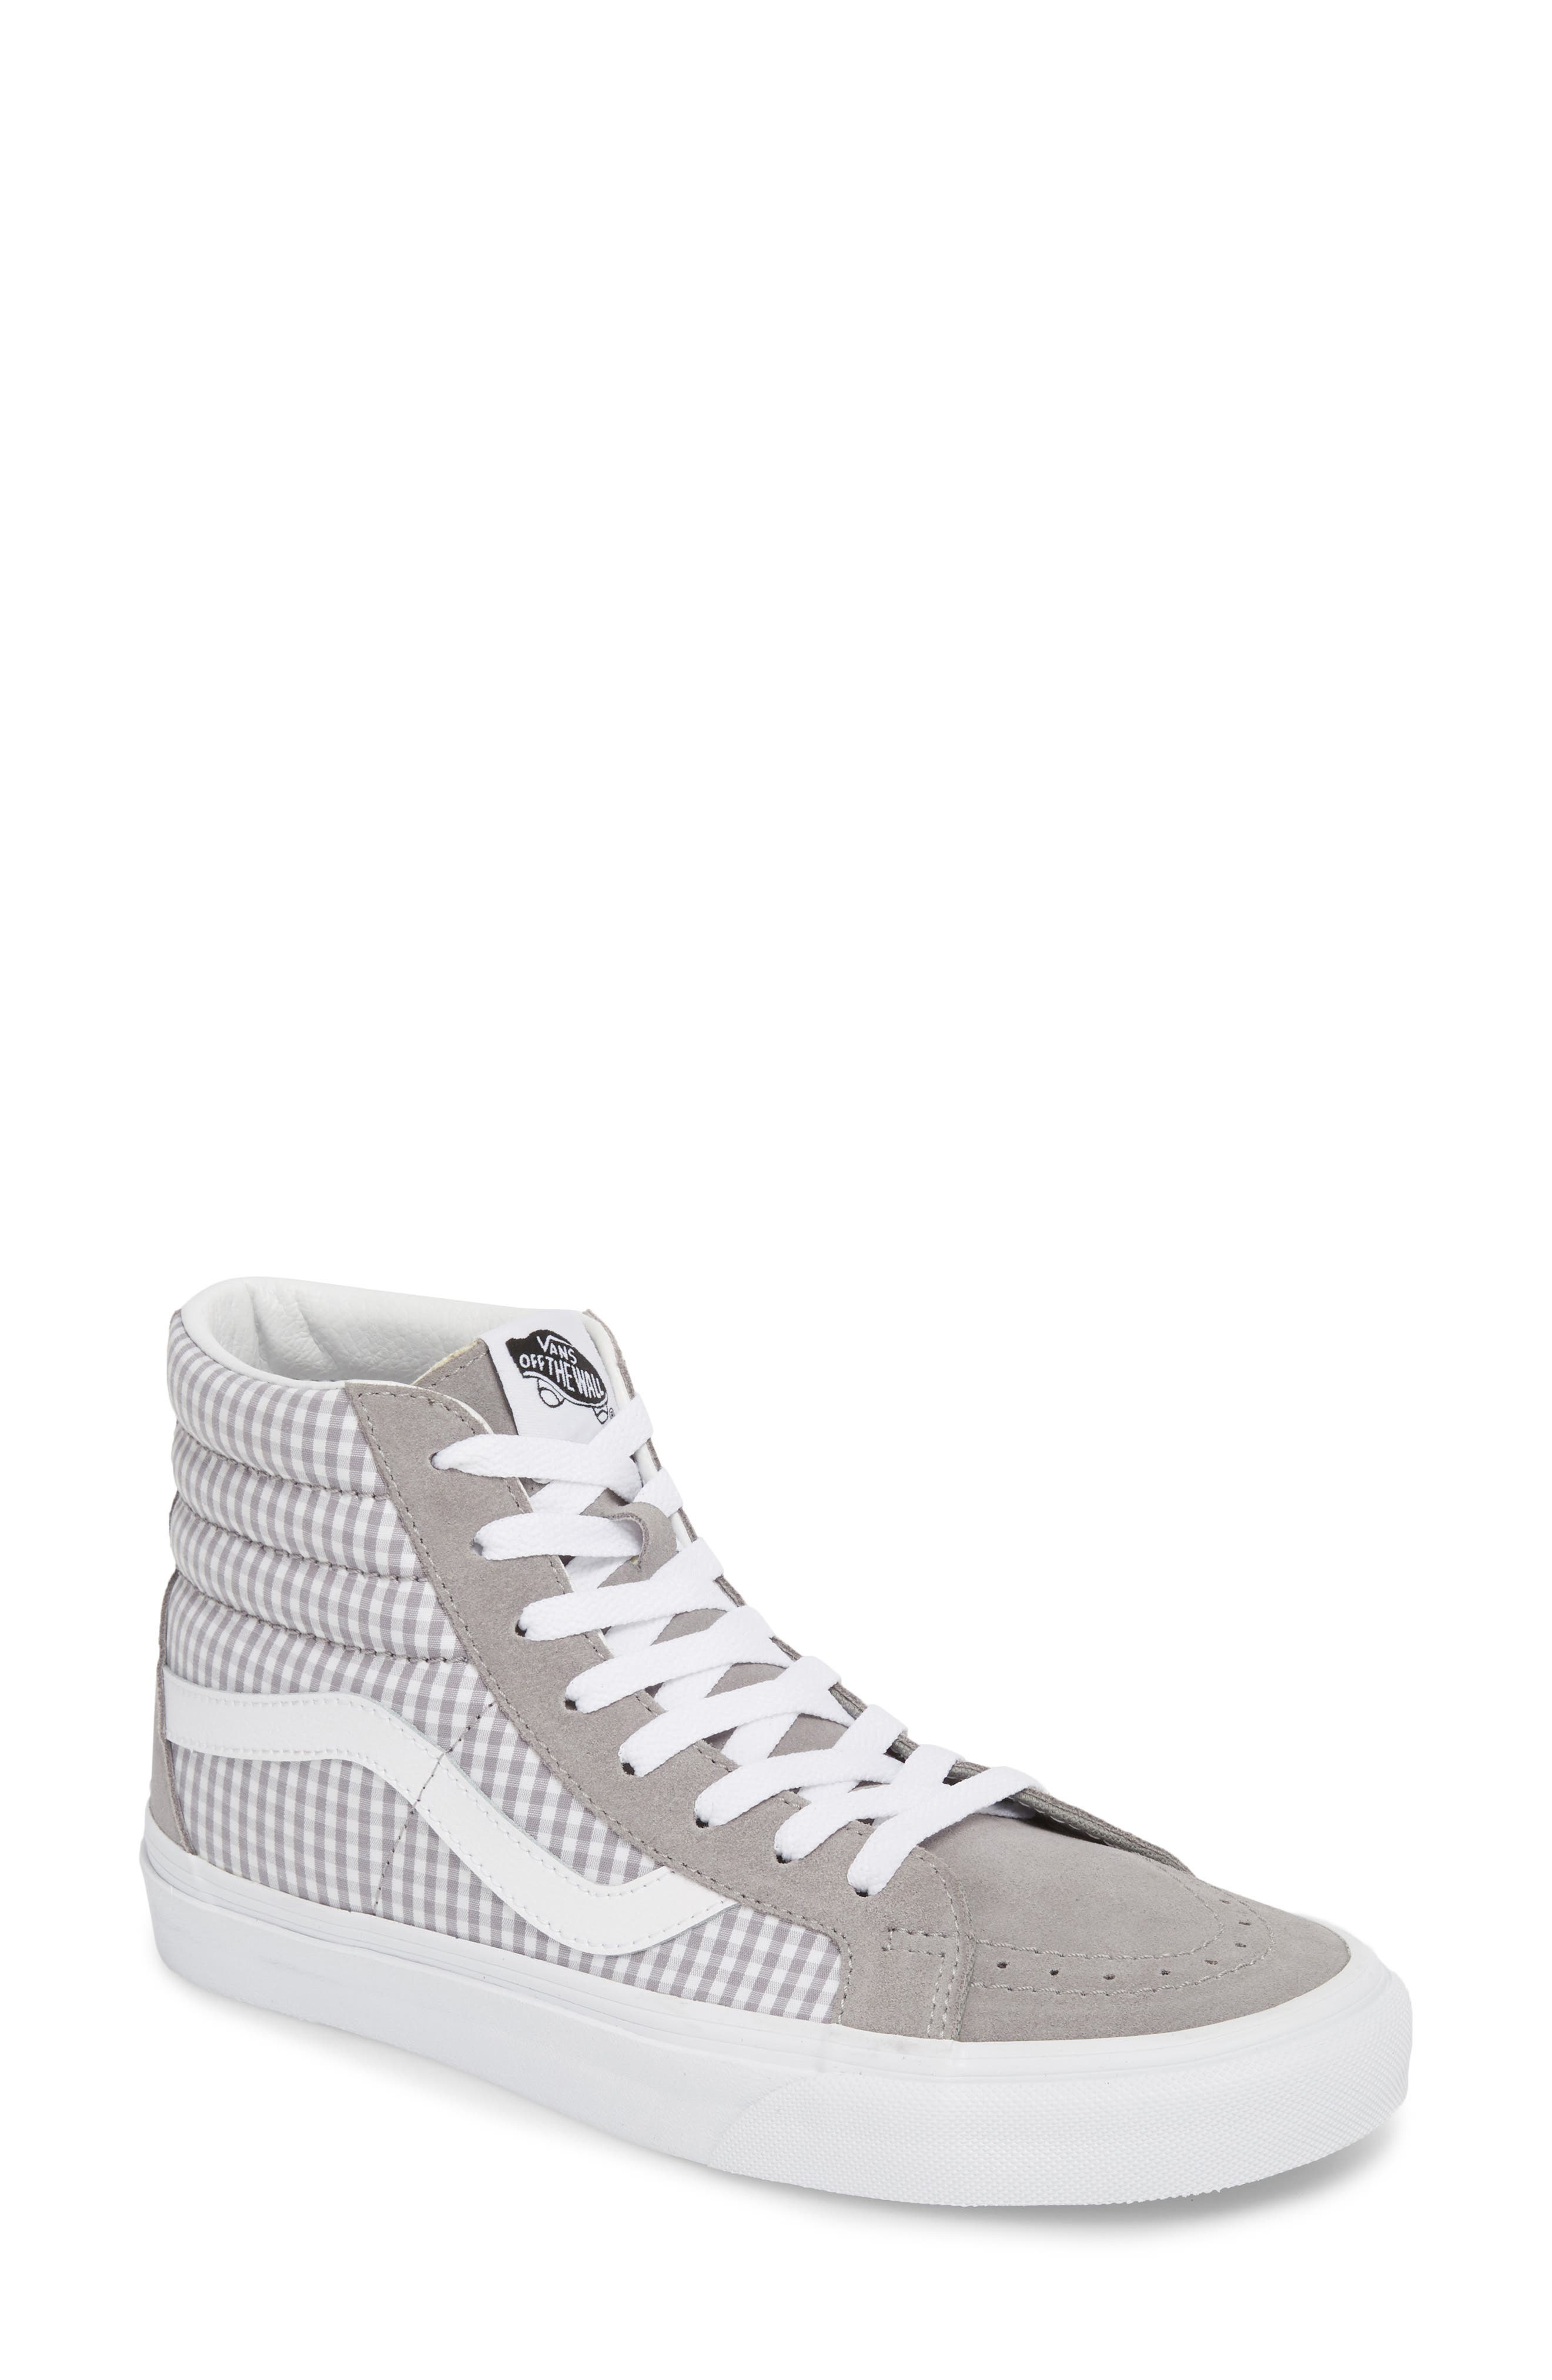 'Sk8-Hi Reissue' Sneaker,                         Main,                         color, 021